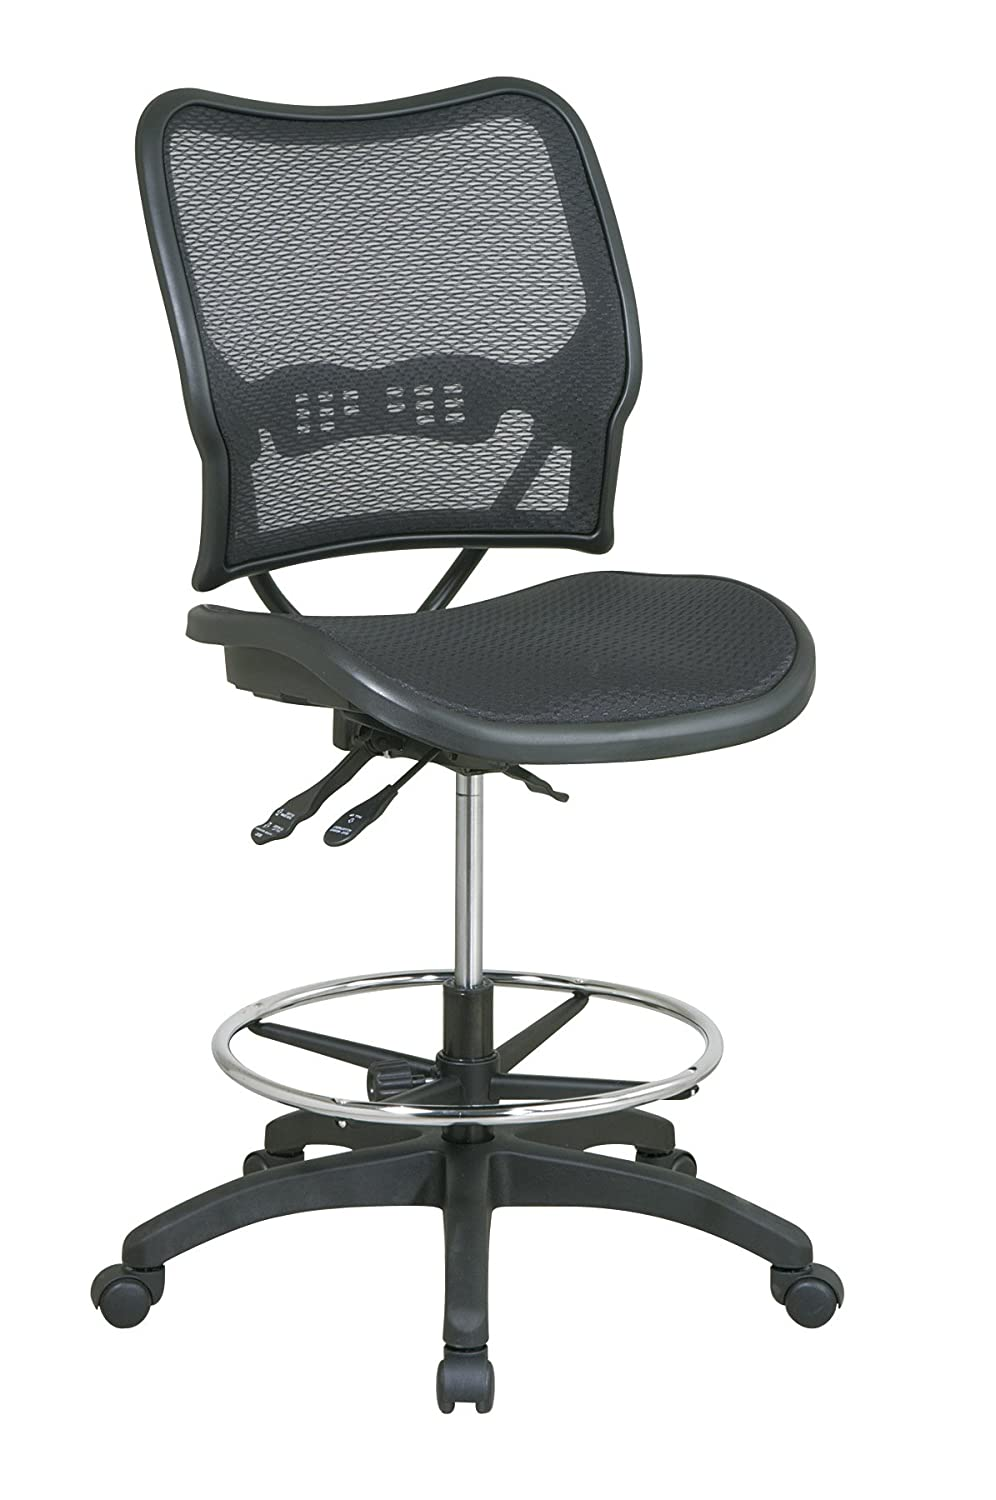 amazon com deluxe drafting chair with air grid seat and back